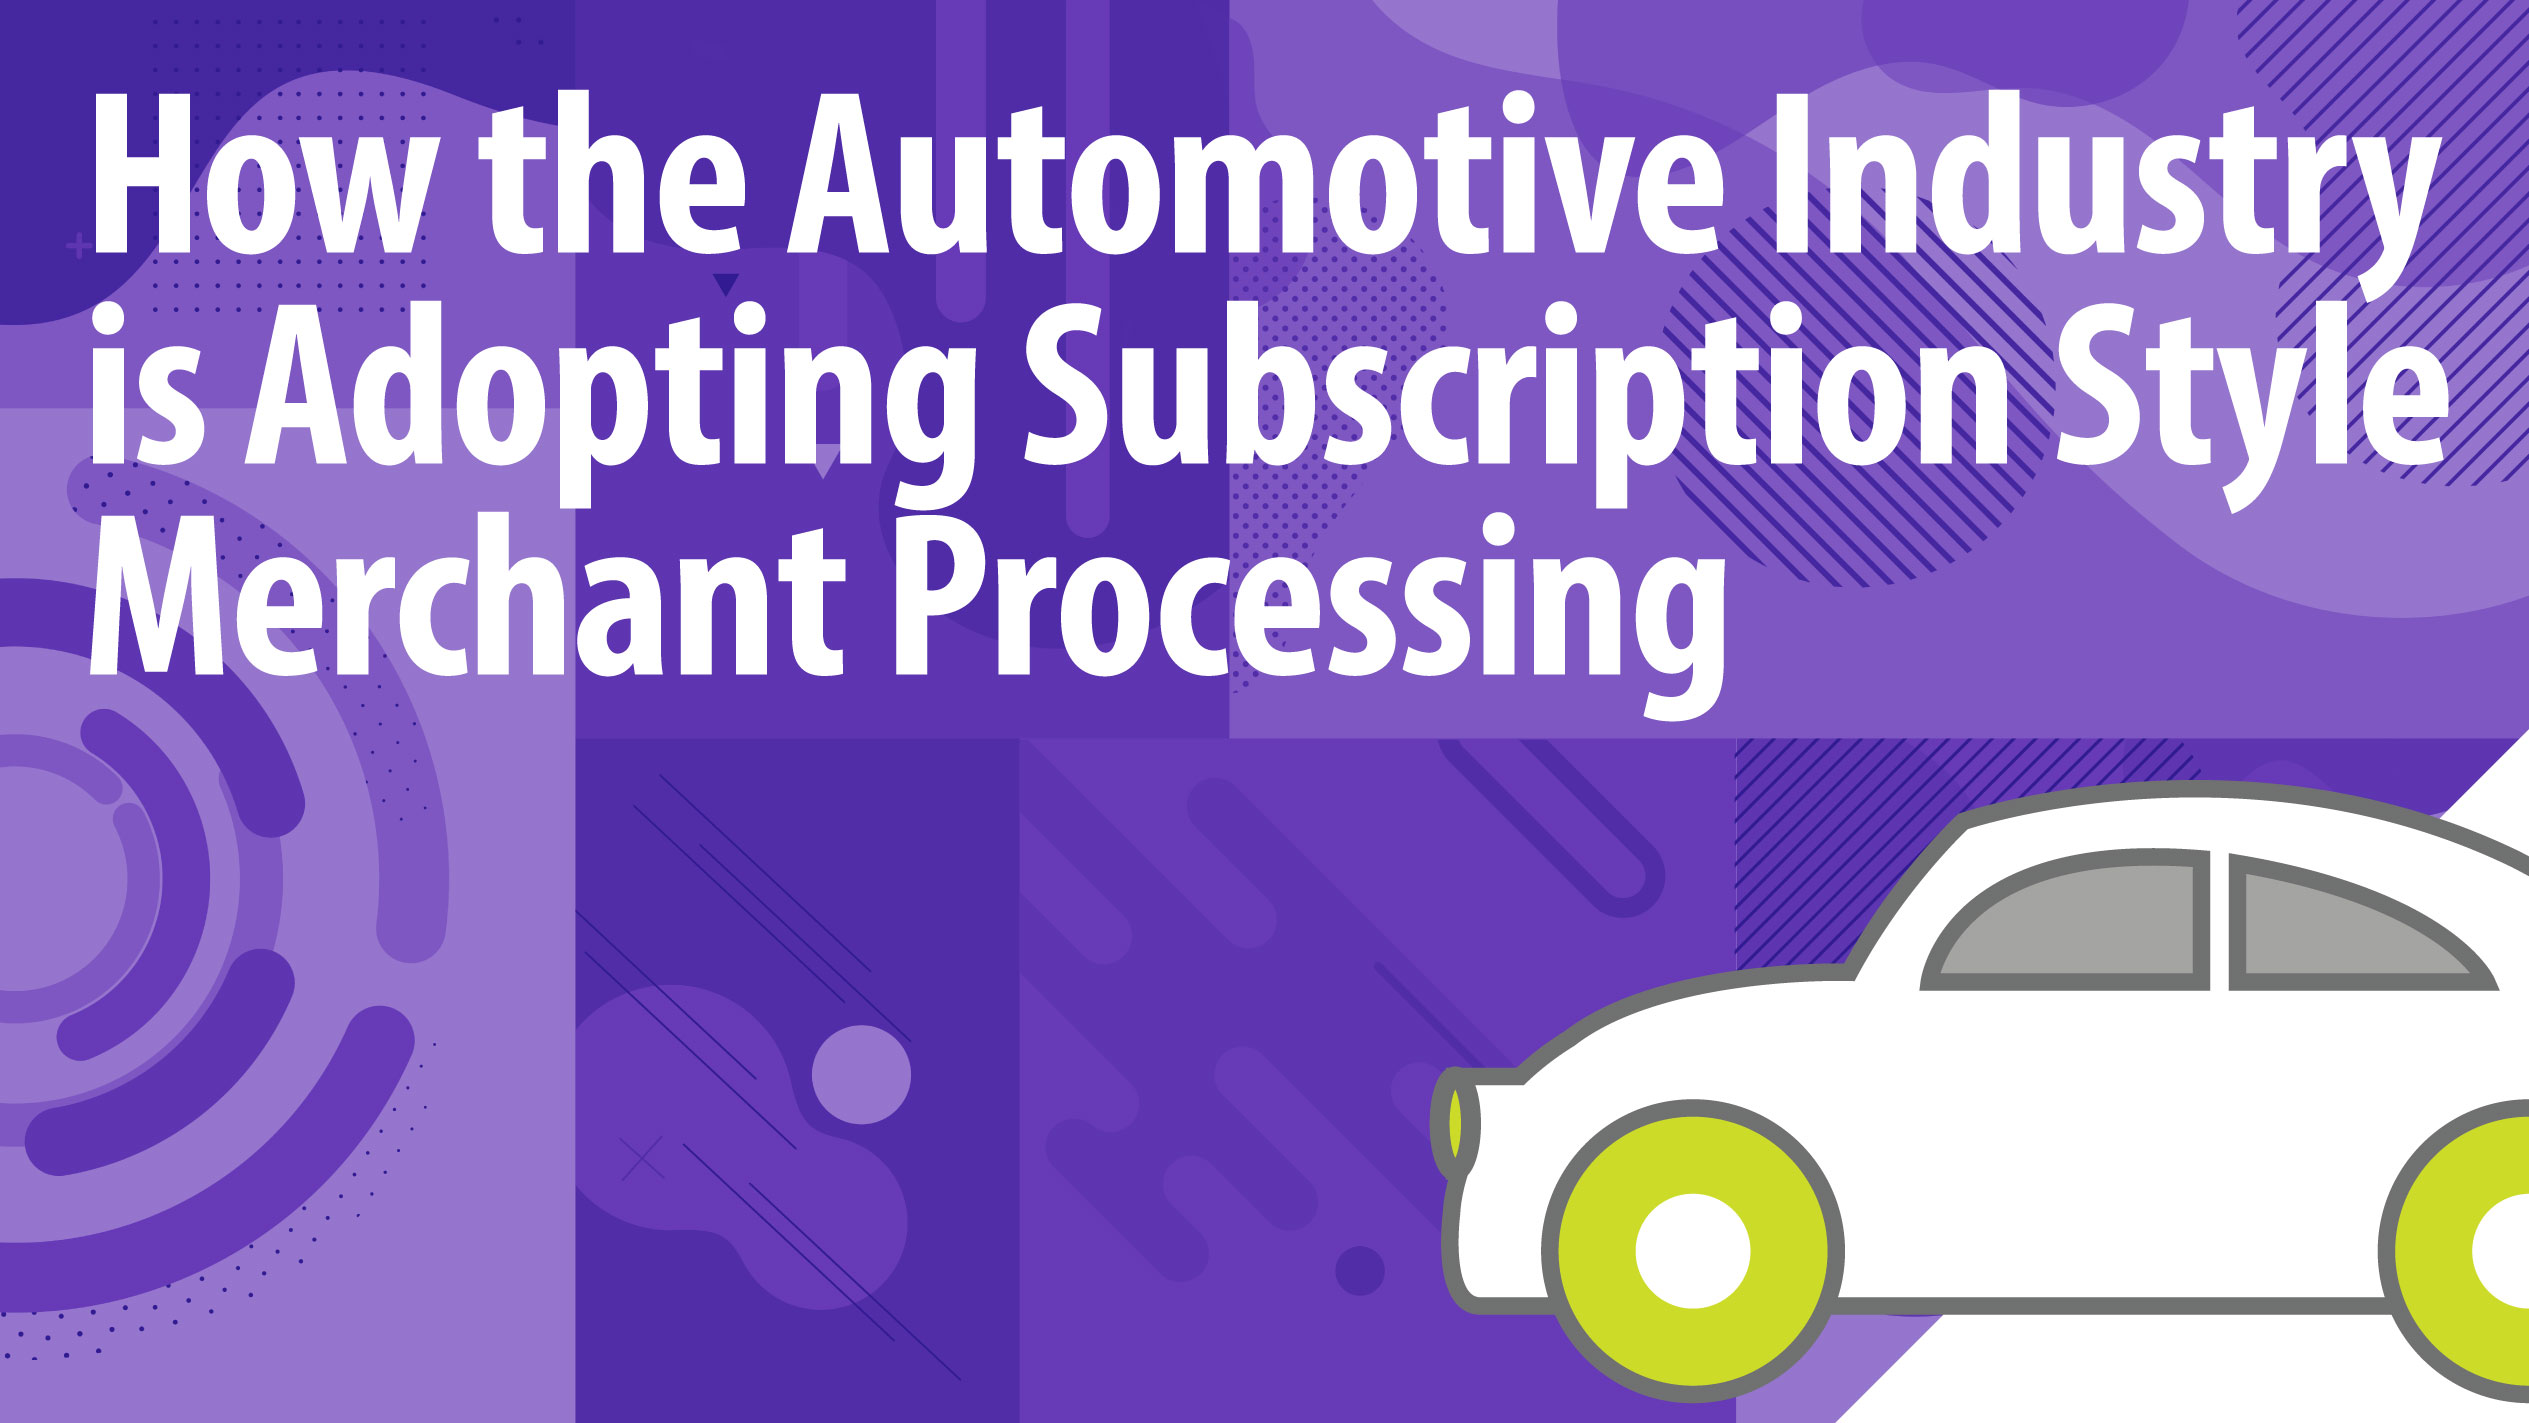 How the Automotive Industry is Adopting Subscription Style Merchant Processing